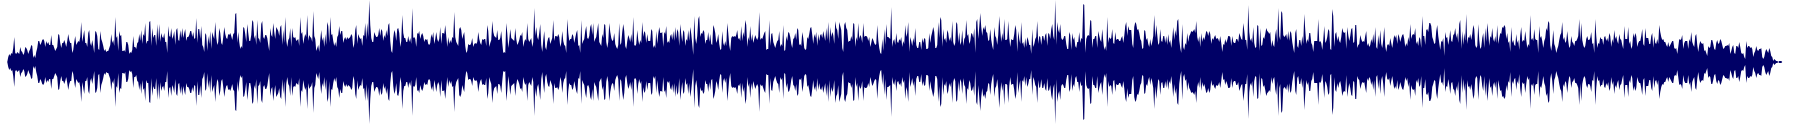 waveform of track #66614